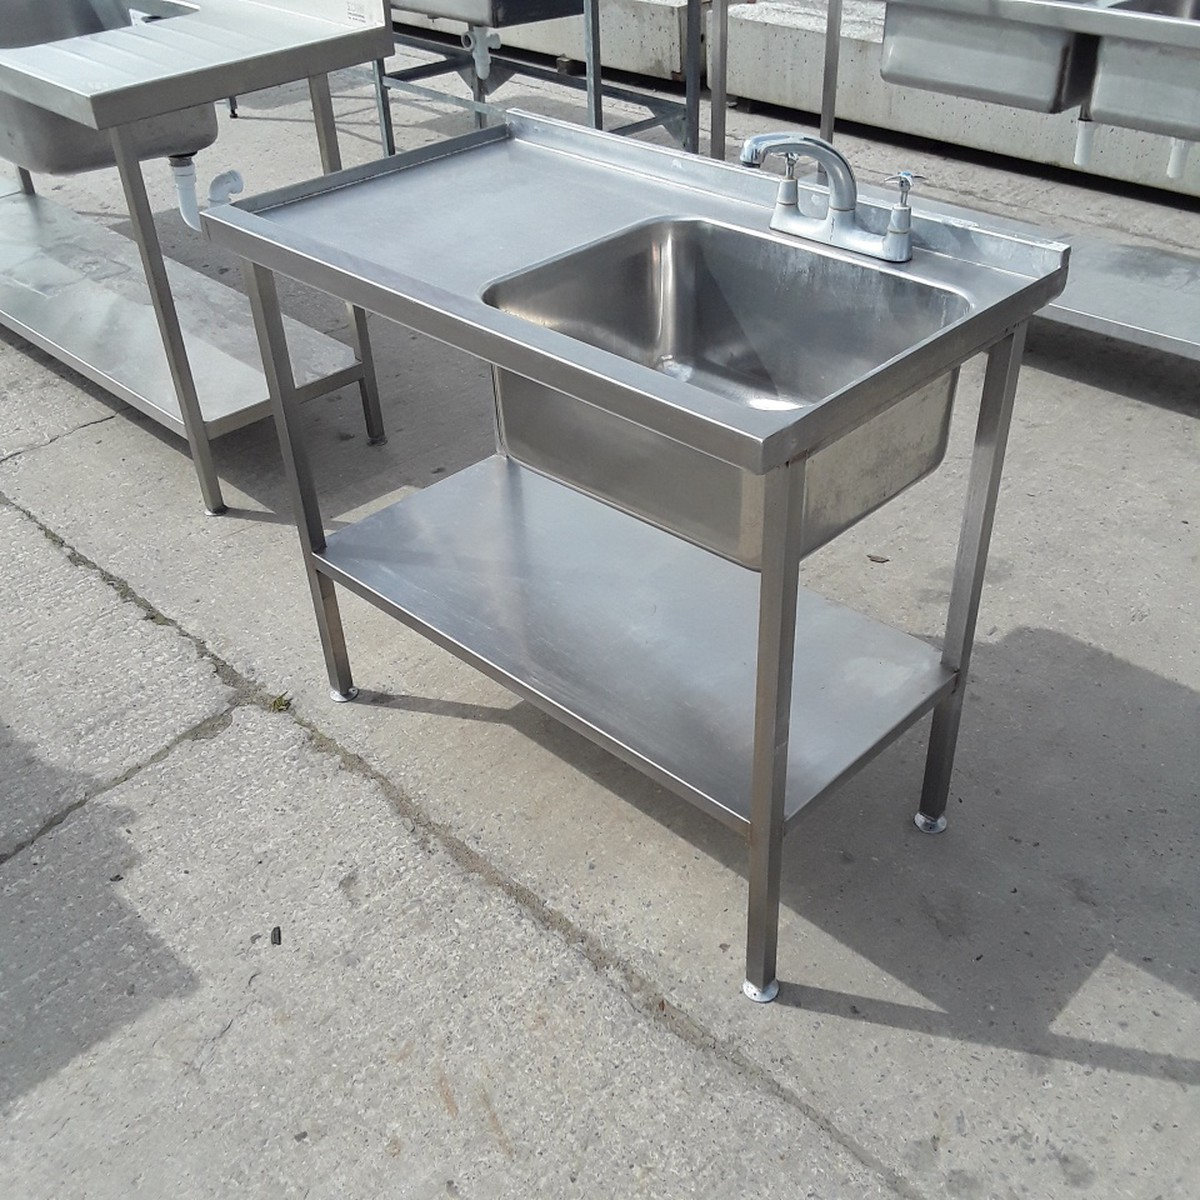 used kitchen sinks for sale best cabinet ideas secondhand catering equipment single